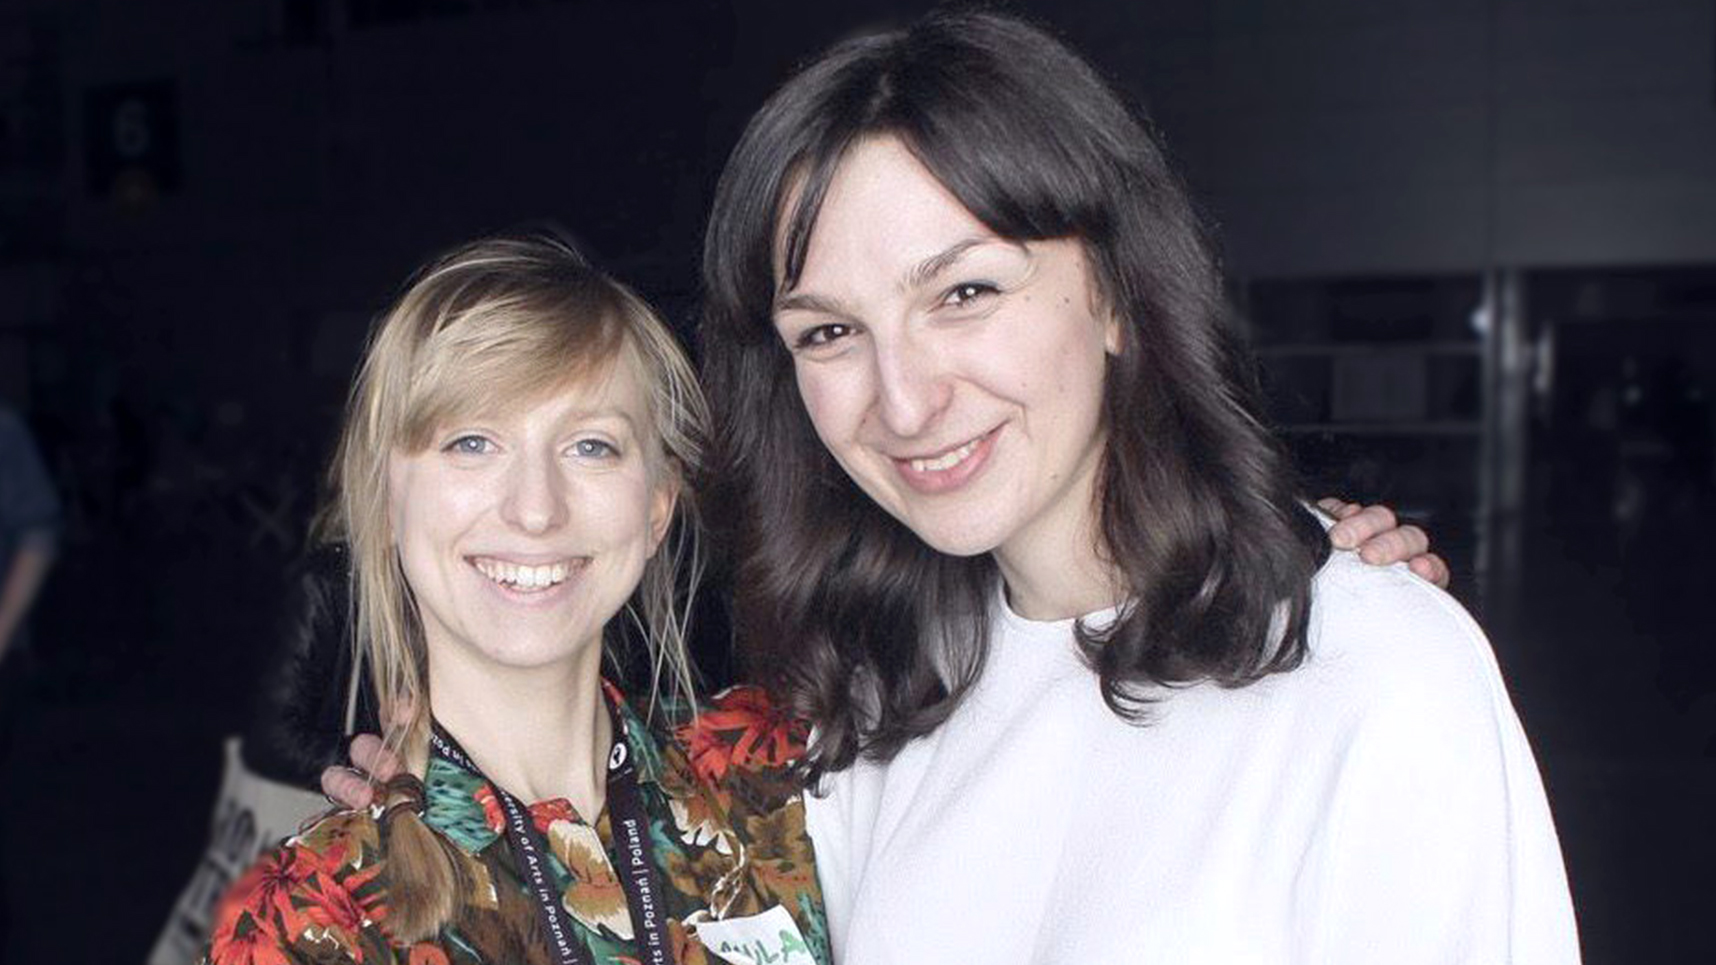 Paula Kacprzak (left) and Olga Rafalska